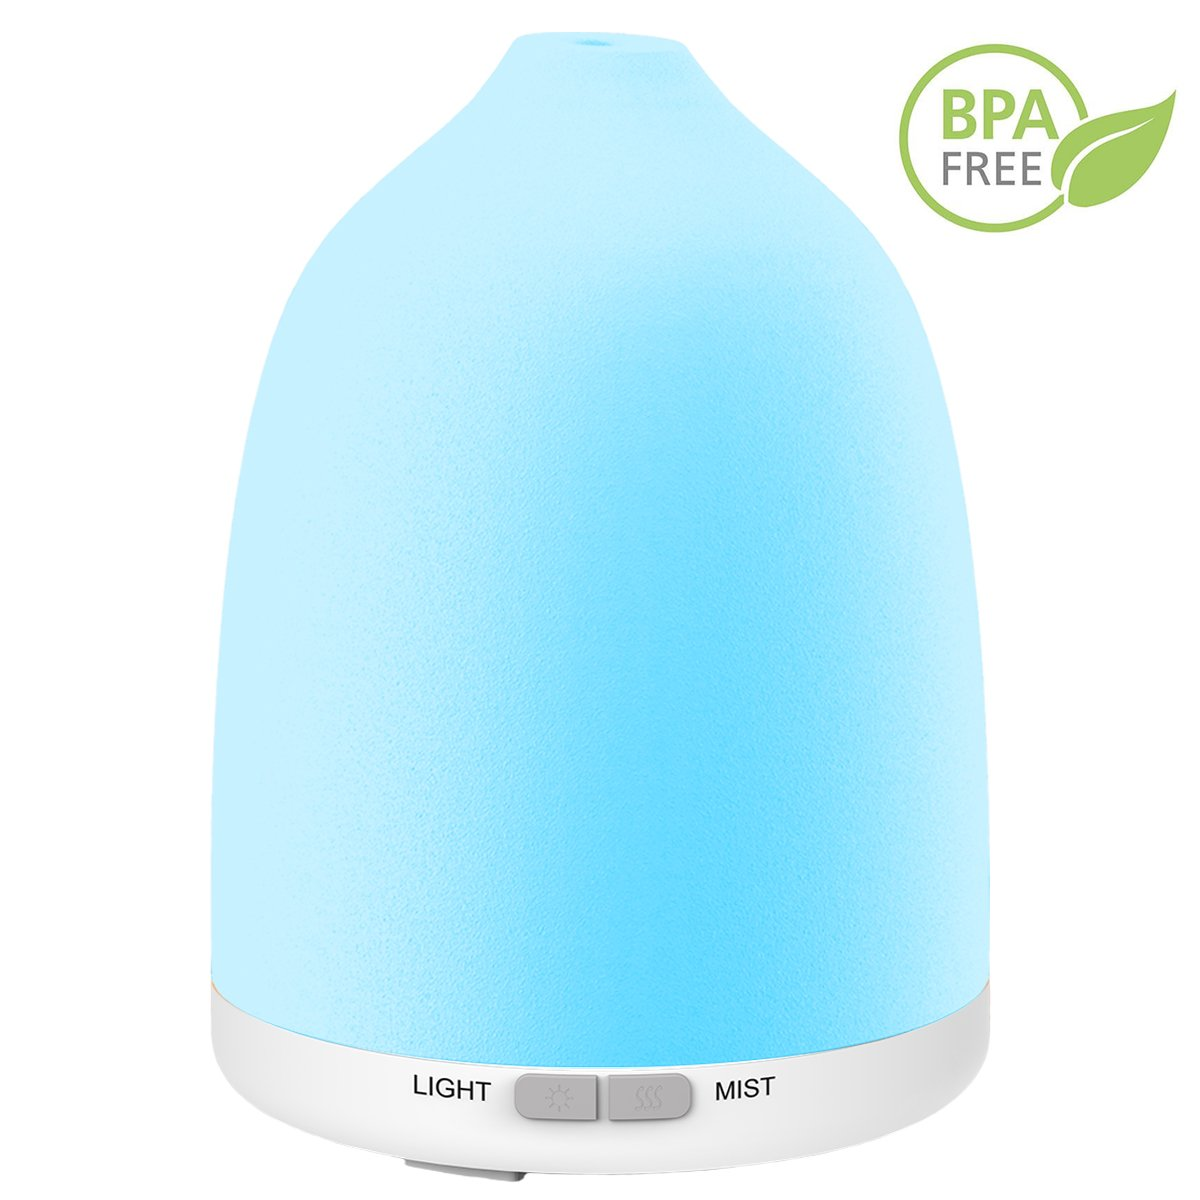 Iextreme Essential Oil Diffuser, 8 Color Changing LED Lights 120ml Aromatherapy Oil Diffuser with Adjustable Mist Mode Waterless Auto Shut-off humidifier for Home Yoga Spa Office Baby